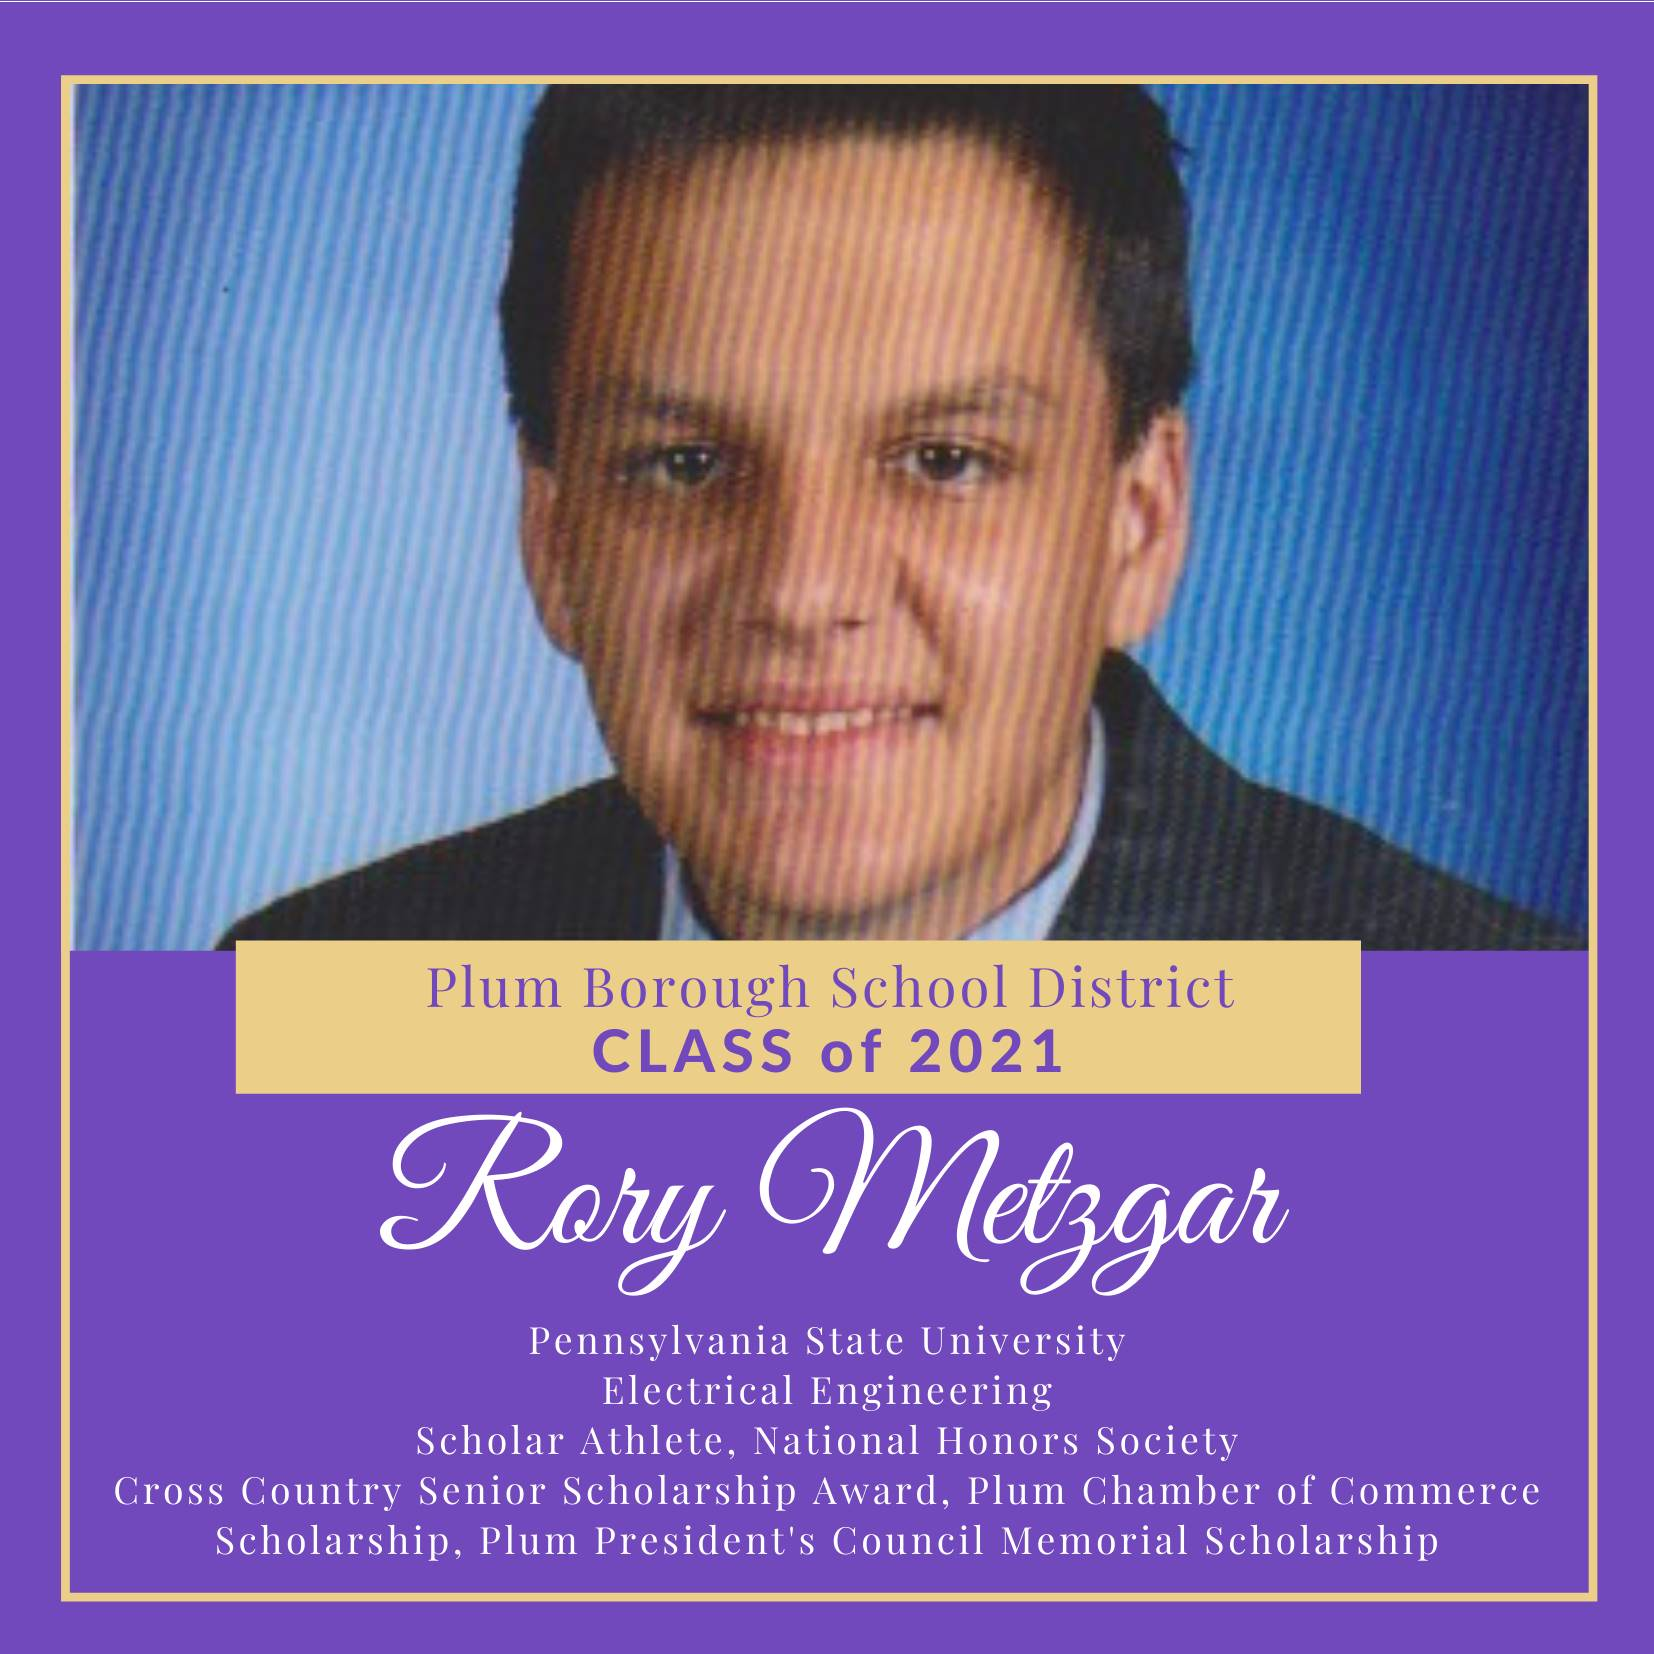 Congratulations to Rory Metzgar, Class of 2021!